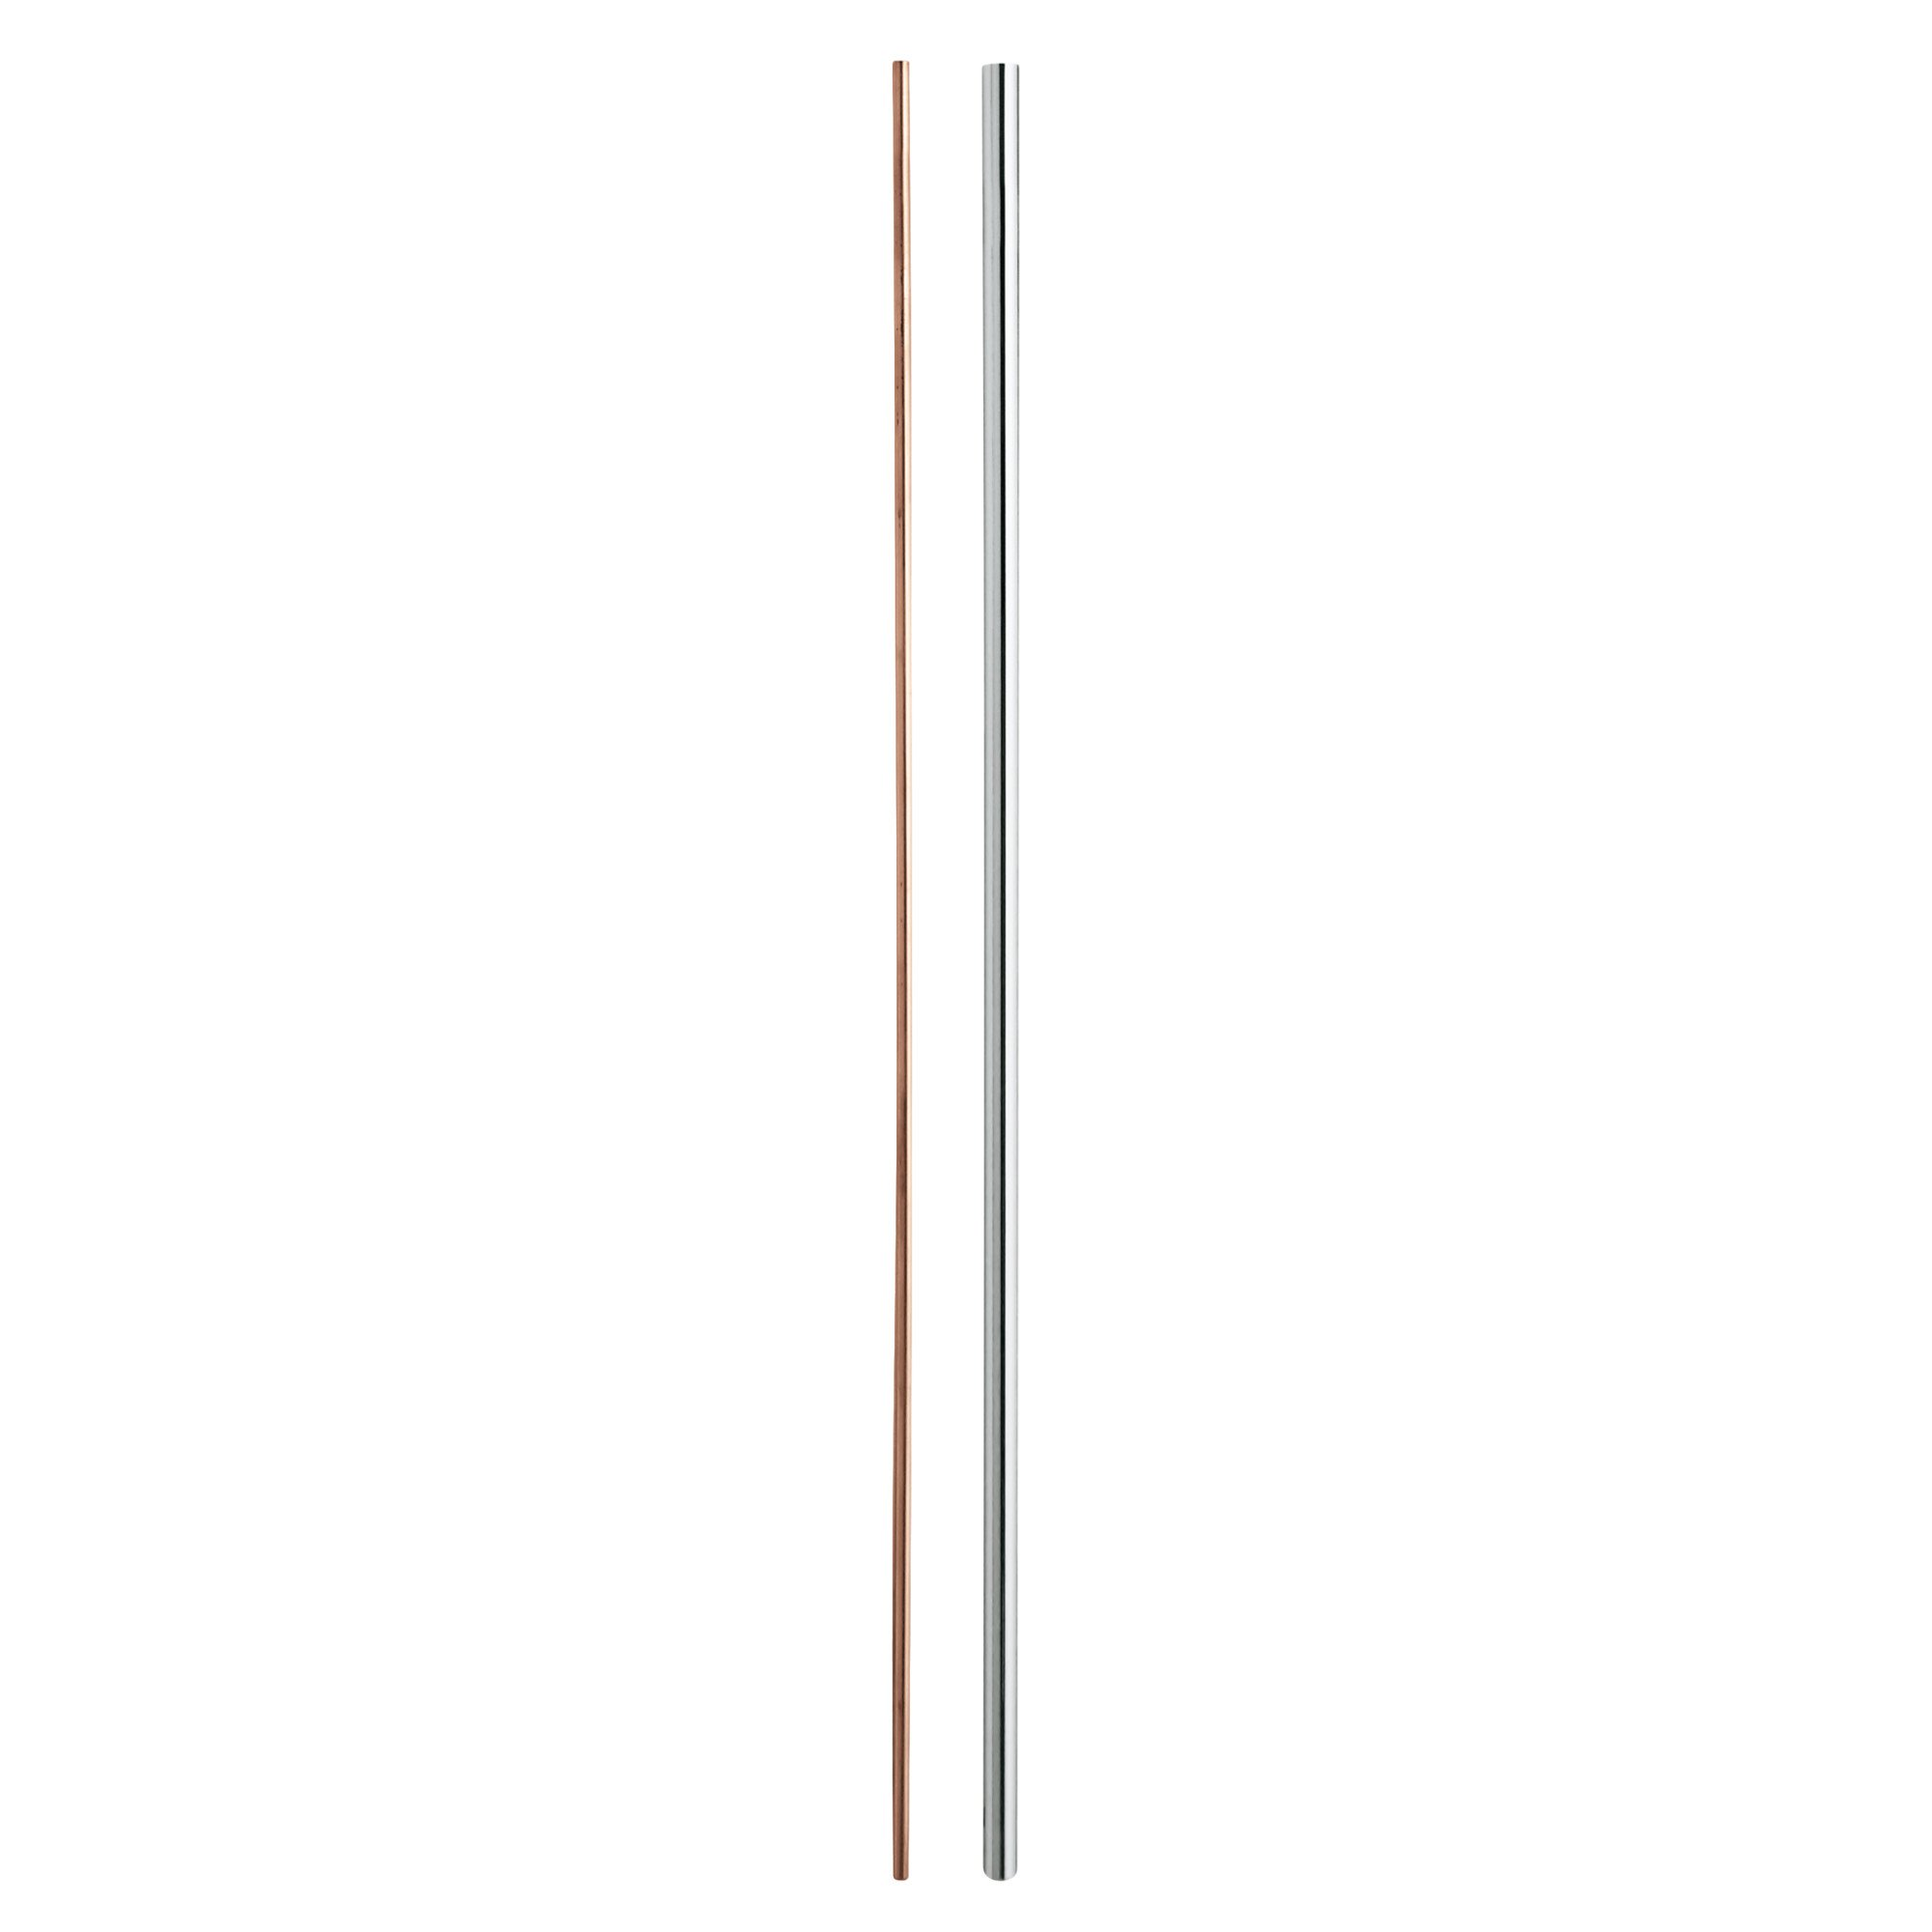 Grohe 48054000 System Euphoria/Tempesta Shorter Rail 34'' (866Mm) StarLight Chrome by GROHE (Image #1)